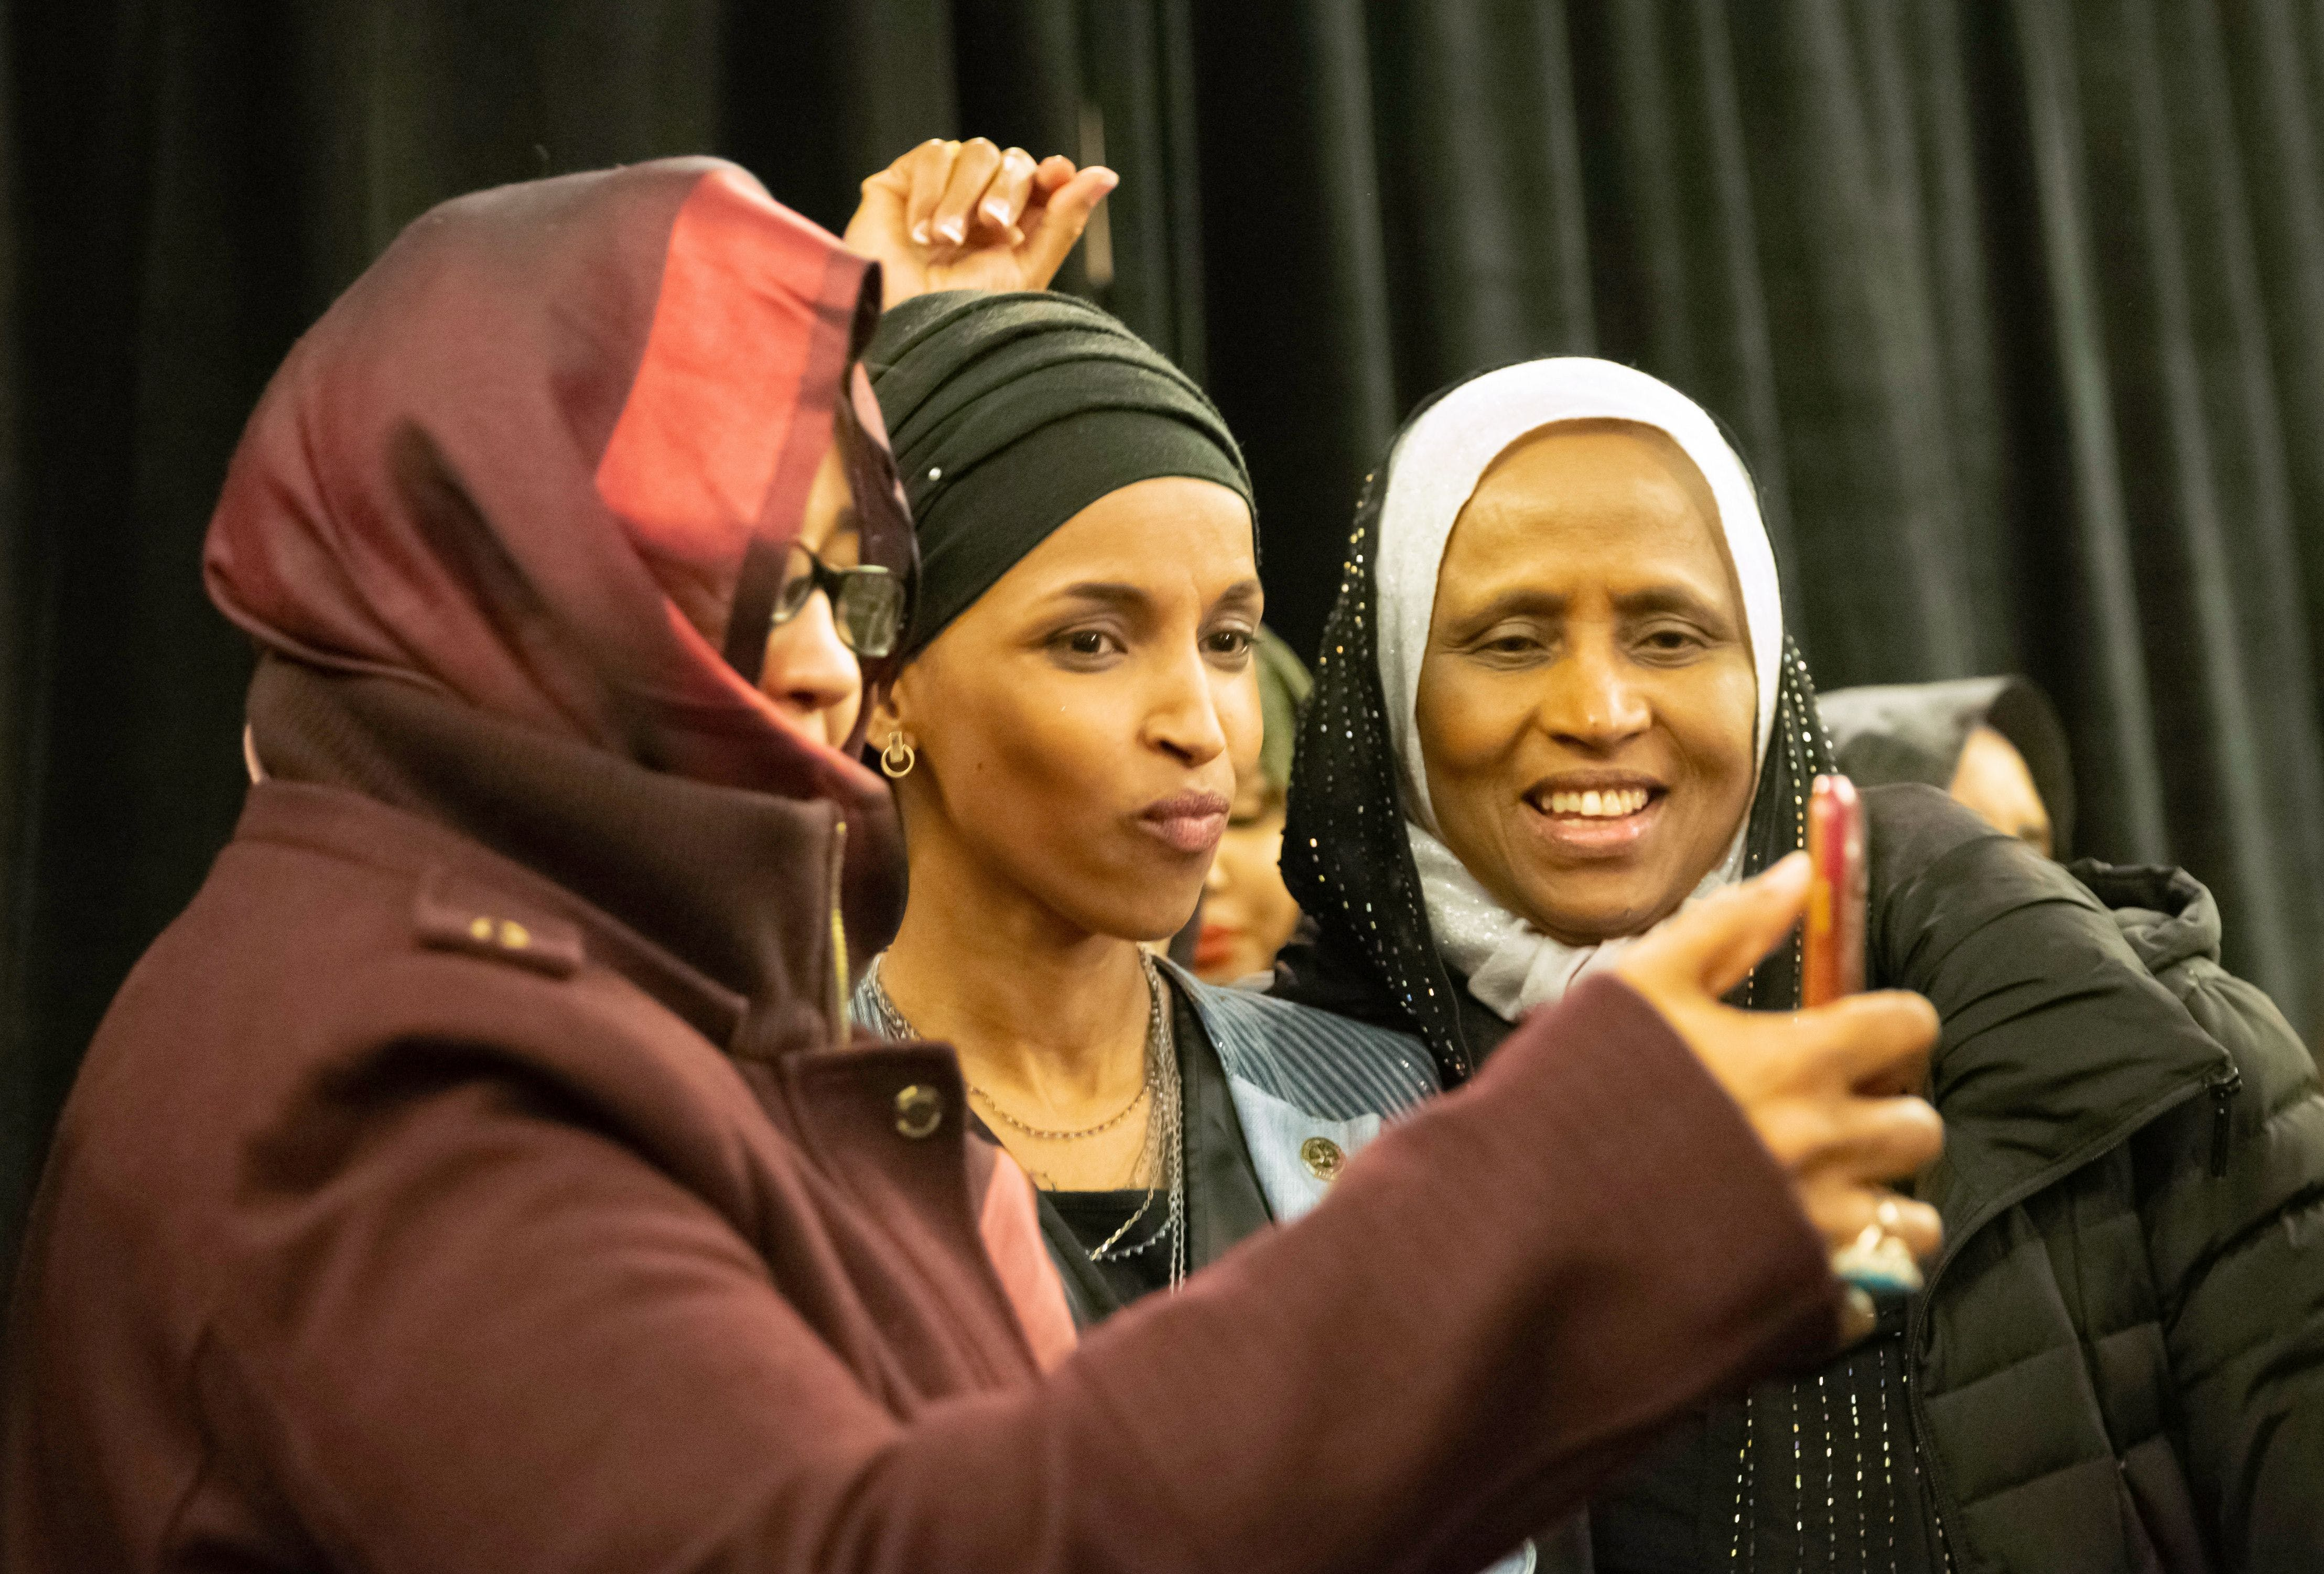 TOPSHOT - Ilhan Omar, newly elected to the U.S. House of Representatives on the Democratic ticket, celebrates with her supporters after her Congressional 5th District primary victory in Minneapolis, Minnesota on November 6, 2018. - US voters elected two Muslim women, both Democrats, to Congress on November 6, 2018, marking a historic first in a country where anti-Muslim rhetoric has been on the rise, American networks reported. Ilhan Omar, a Somali refugee, won a House seat in a heavily-Democratic district in the Midwestern state of Minnesota, where she will succeed Keith Ellison, himself the first Muslim elected to Congress. (Photo by Kerem Yucel / AFP)        (Photo credit should read KEREM YUCEL/AFP/Getty Images)